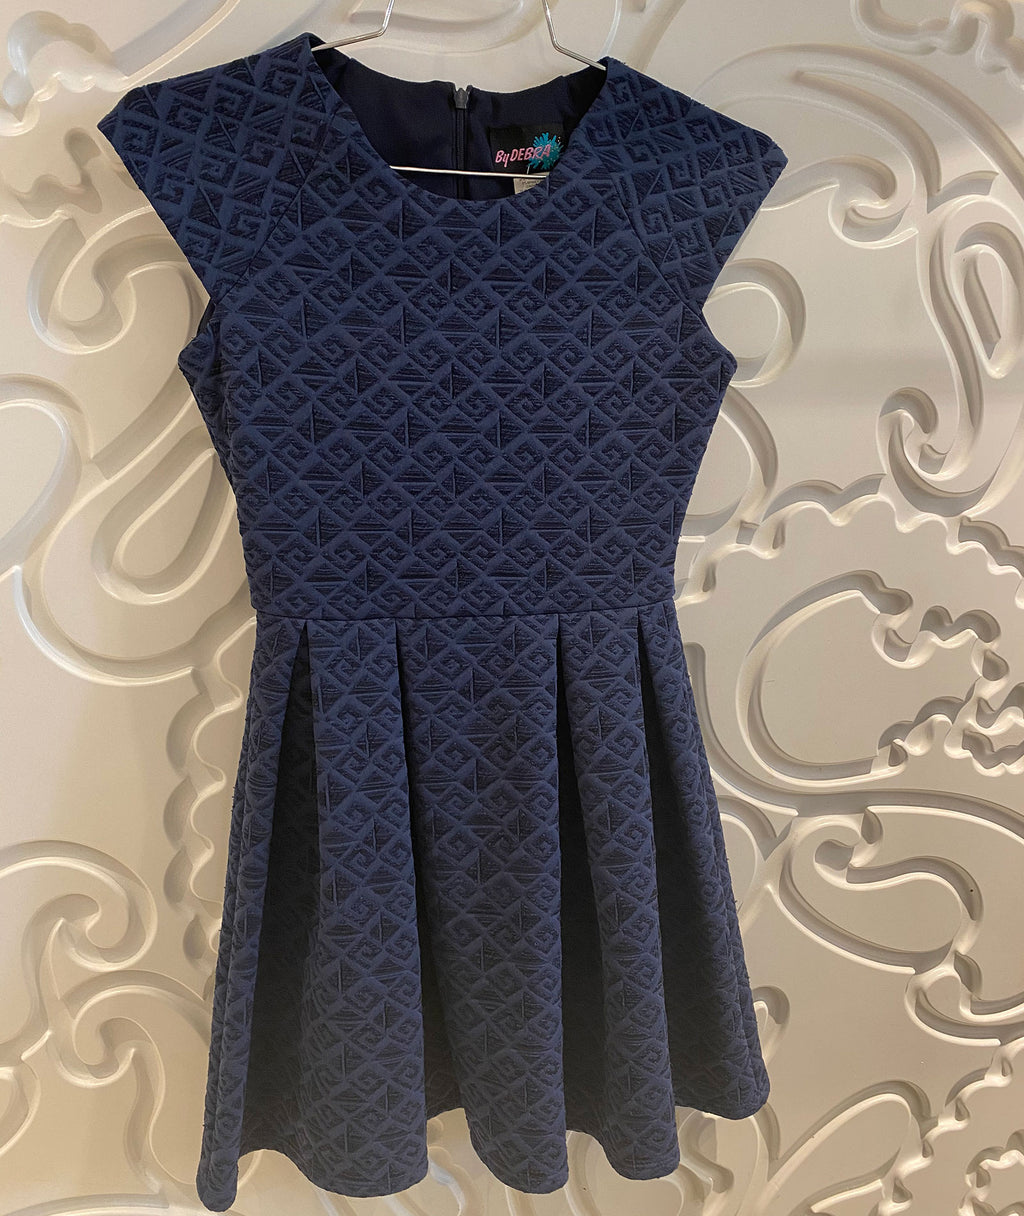 By Debra Girls Navy Cap Sleeve Dress